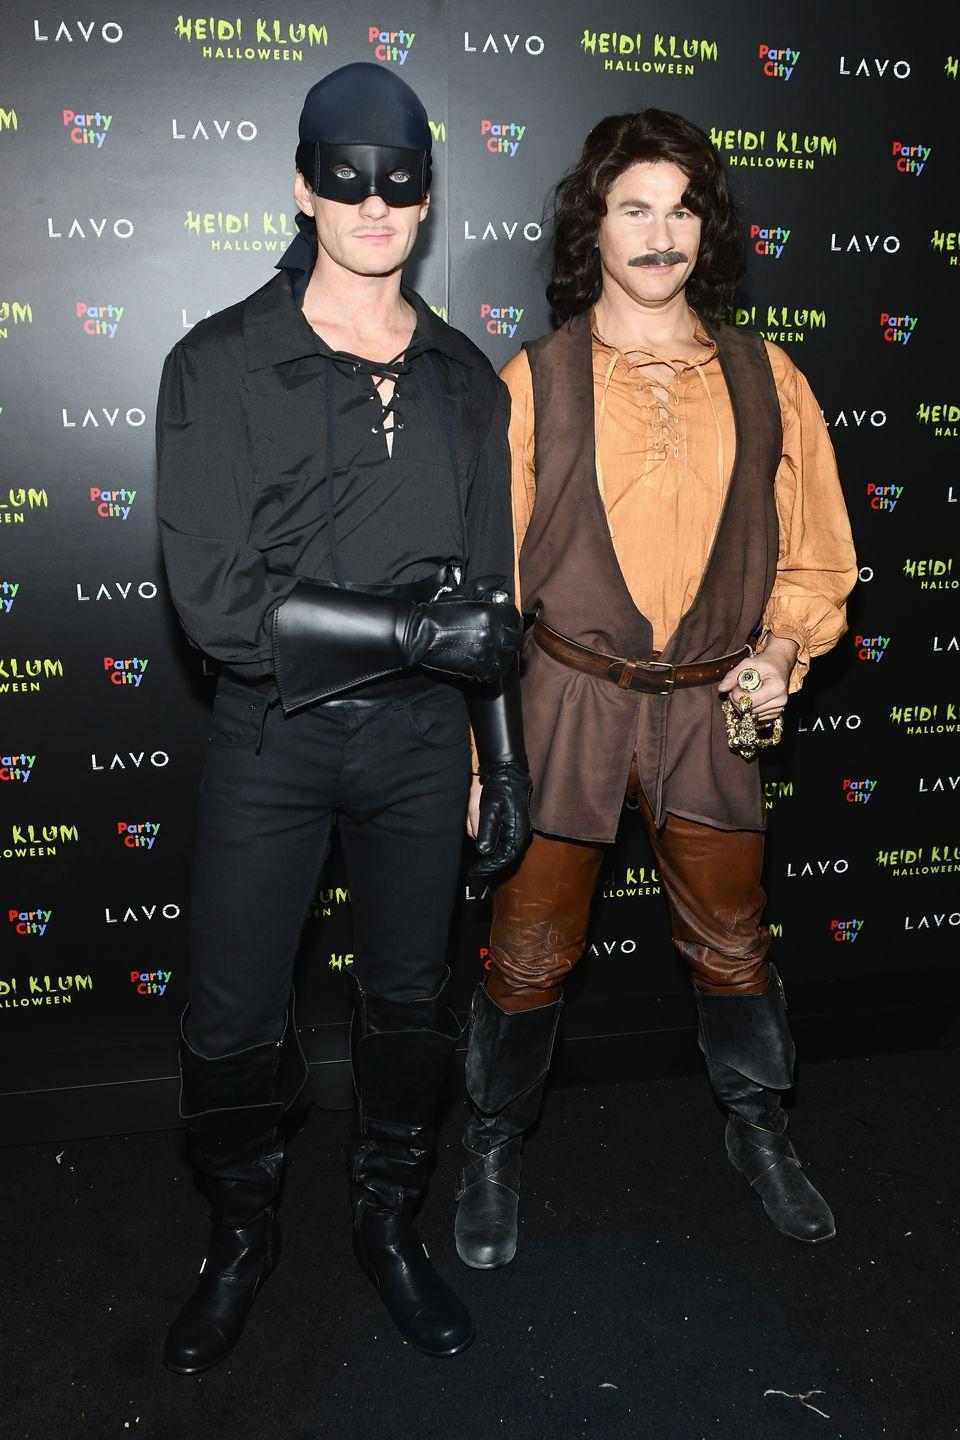 <p>Neil and David were absolutely spot-on when they appeared as the two fearless adventurers from the classic film <em>The Princess Bride</em>. </p>